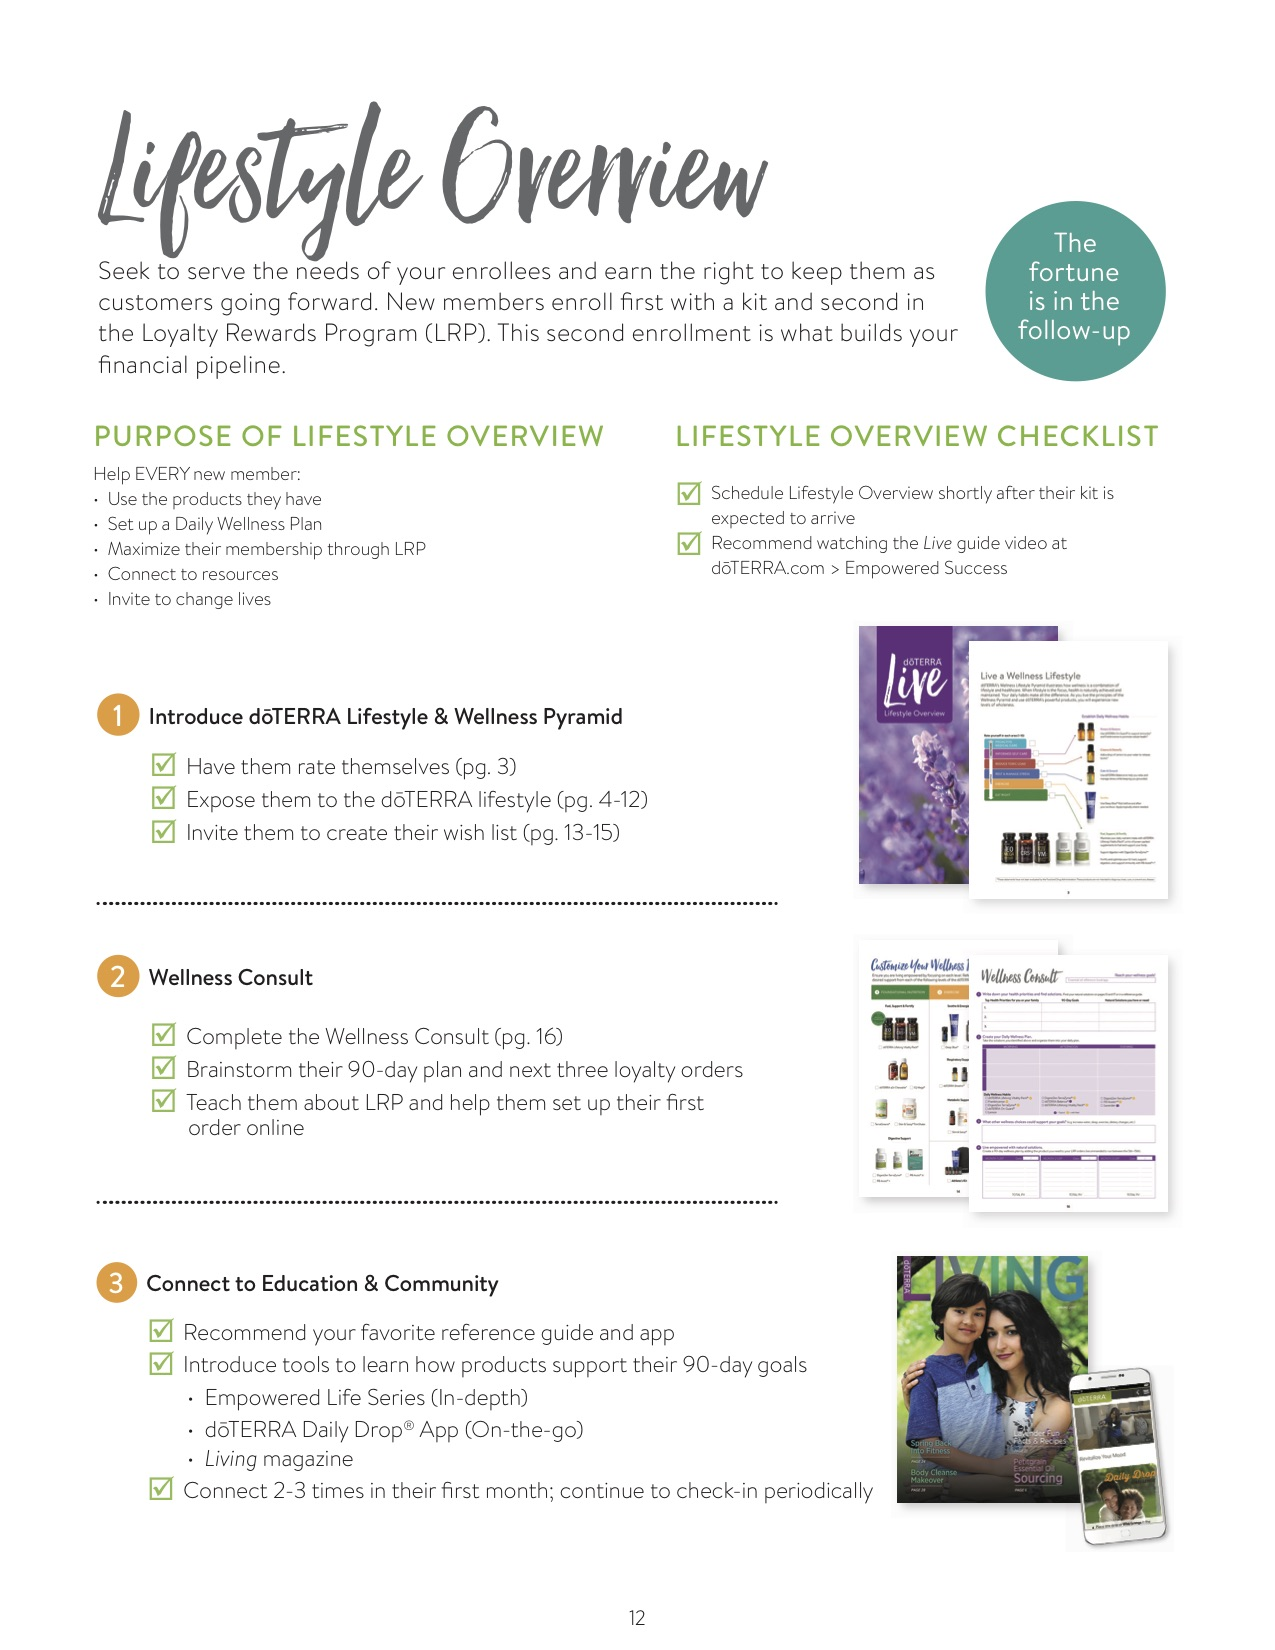 empowered-success-launch-guide 12.jpg